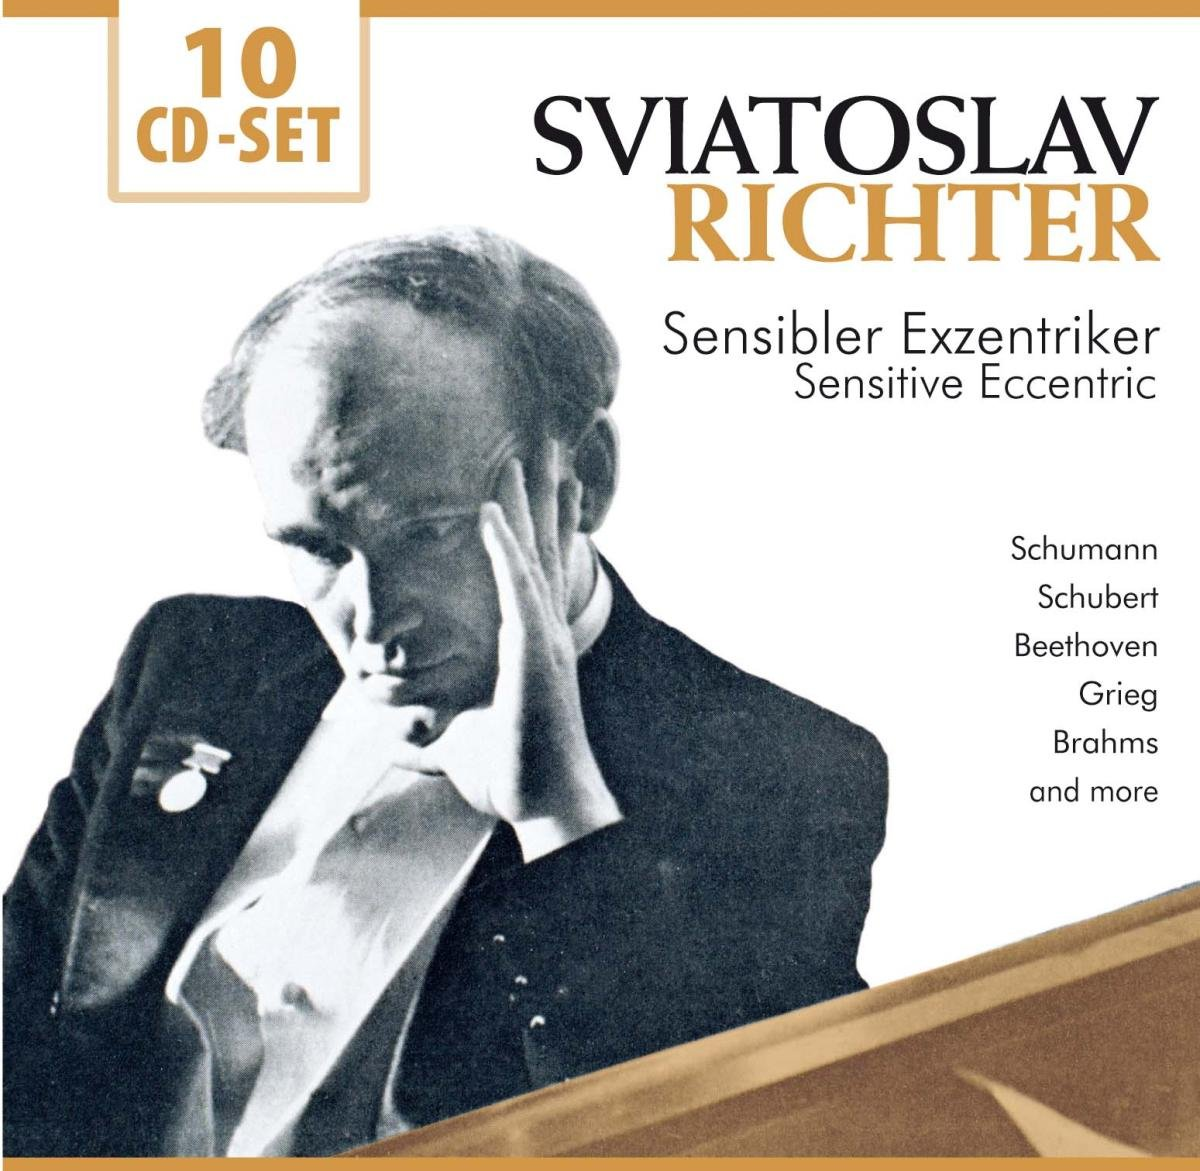 Святослав Рихтер Sviatoslav Richter. Sensibler Exzentriker / Sensitive Eccentric (10 CD) цены онлайн